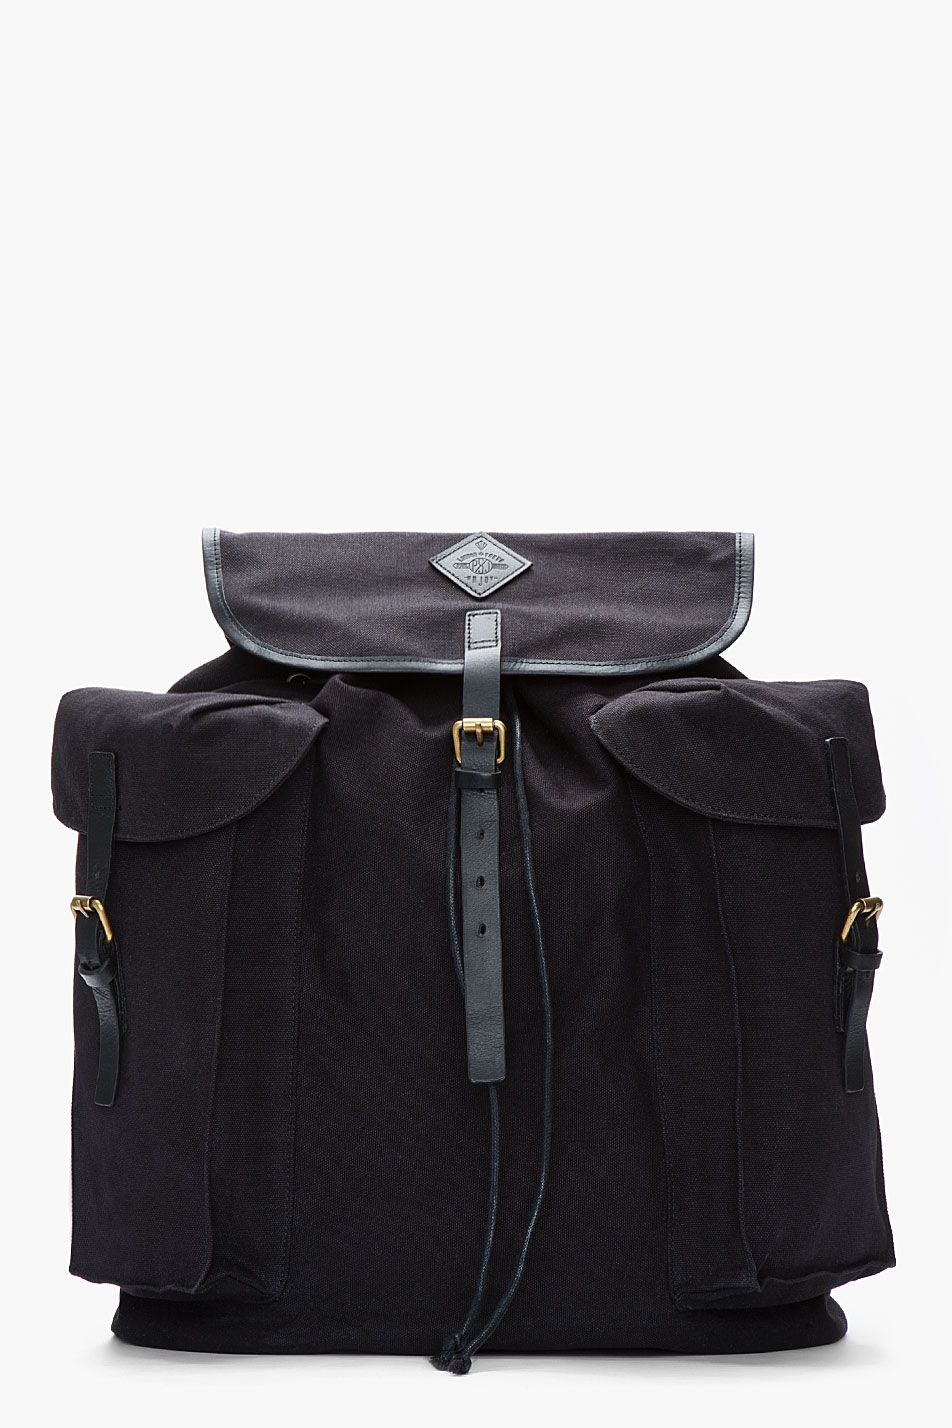 cec78b3254bb4 PAUL SMITH JEANS Oversize Black Canvas Neon-Trimmed Backpack ...